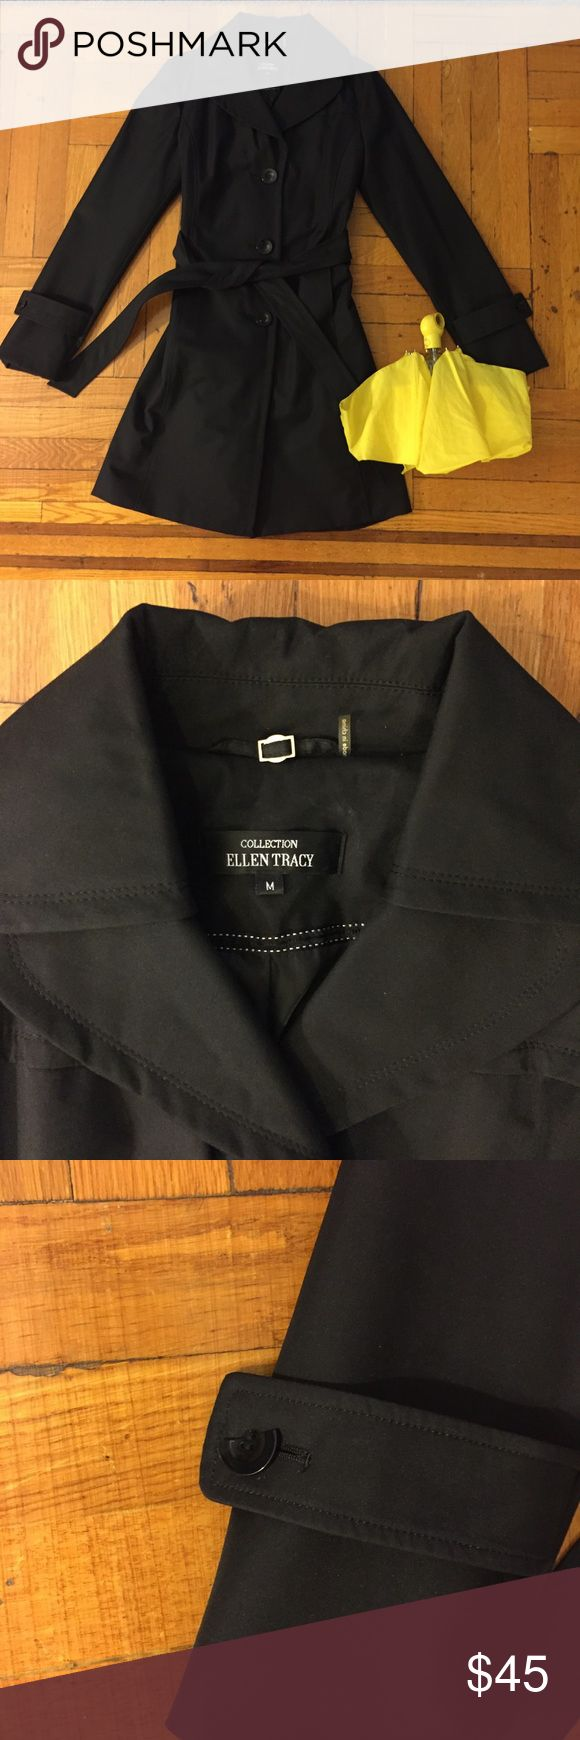 """Ellen Tracy Belted Trench Raincoat Ellen Tracy Belted Trench Raincoat  - Size M  - 36"""" total length, 20"""" chest (pit to pit)  - fully lined  - gently used  - some cosmetic damage to one decorative sleeve button (see photo)  - accessories not included   This super chic, professional, and stylish raincoat is ready for a new home! Throw it on over a suit or dress and you're ready to go - super versatile wardrobe staple!    All measurements approximate, taken with garment lying flat. Ellen Tracy…"""